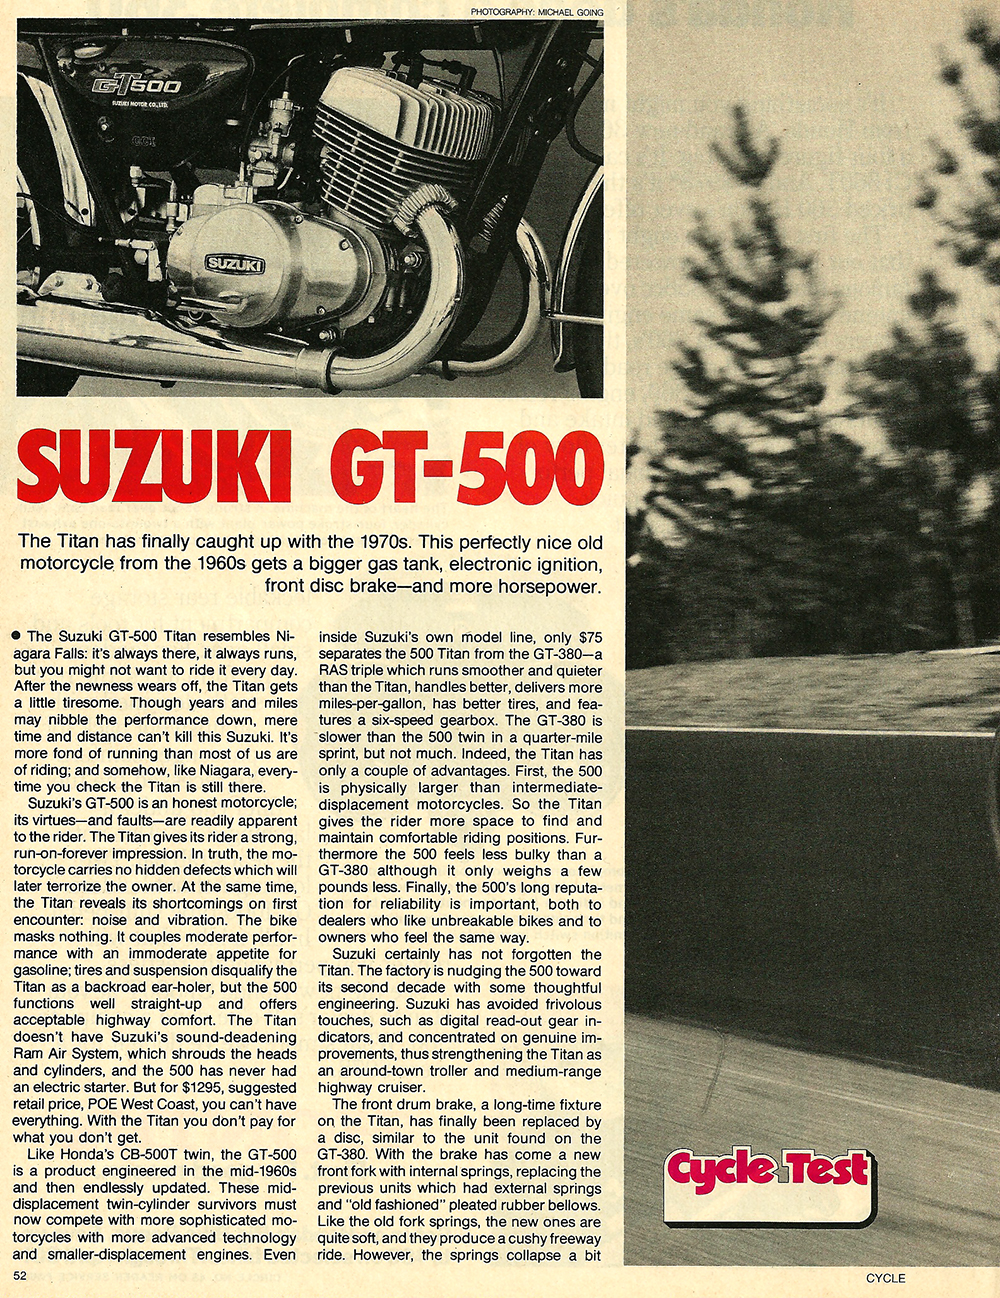 1976 Suzuki GT500 road test 1.jpg